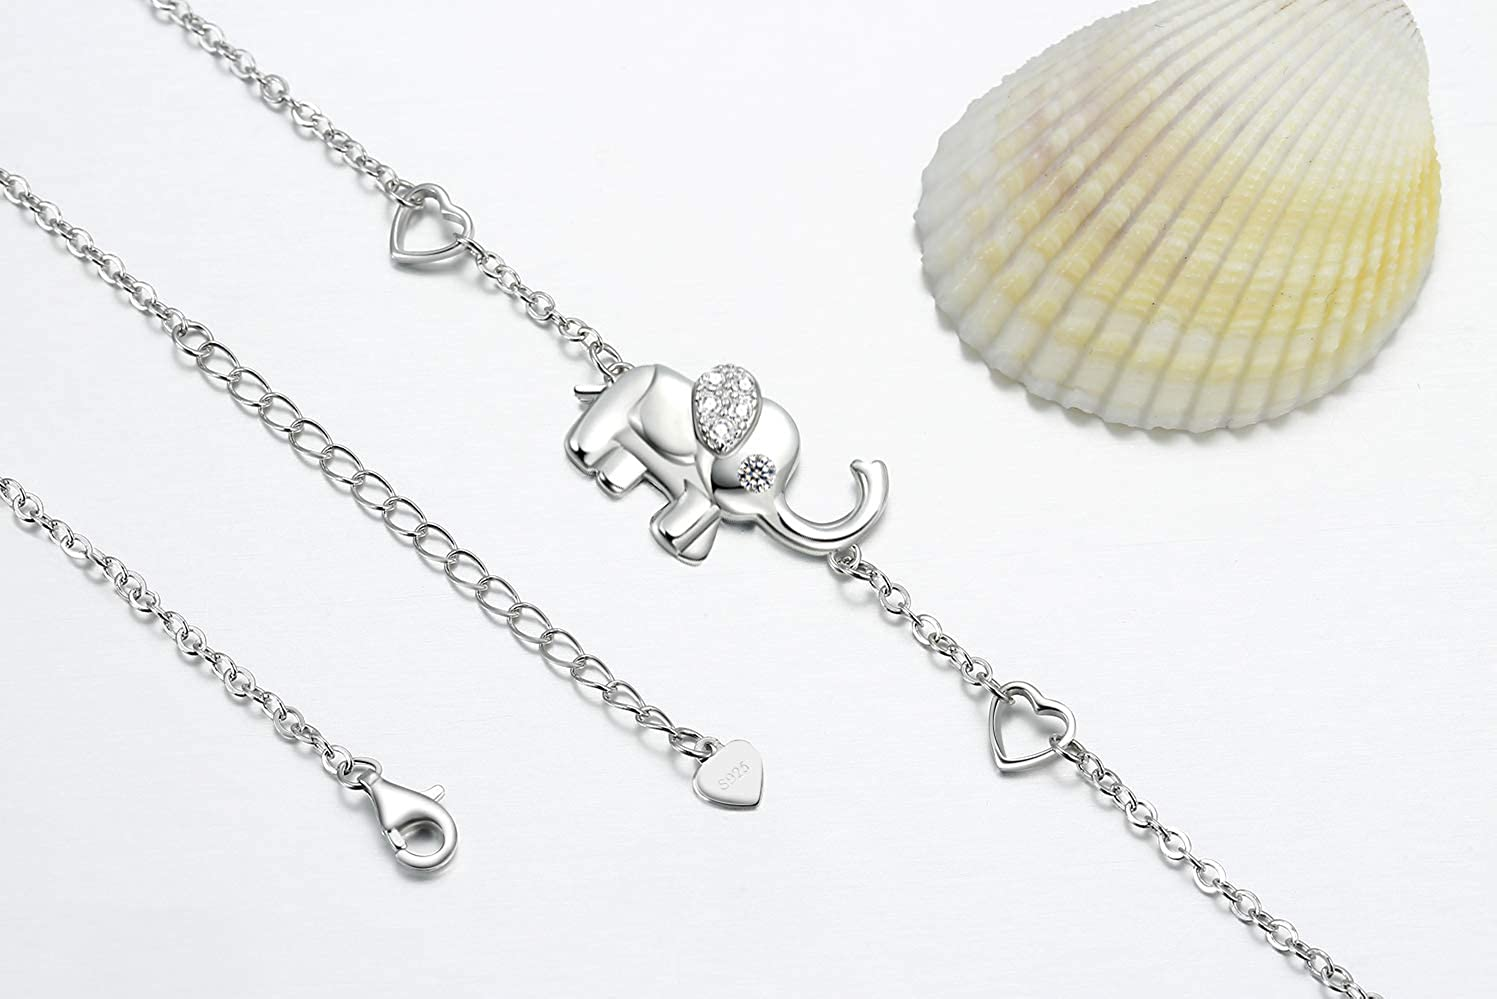 OneSight Elephant Bracelet//Anklets for Women 925 Sterling Silver Elephants Bracelets Jewelry